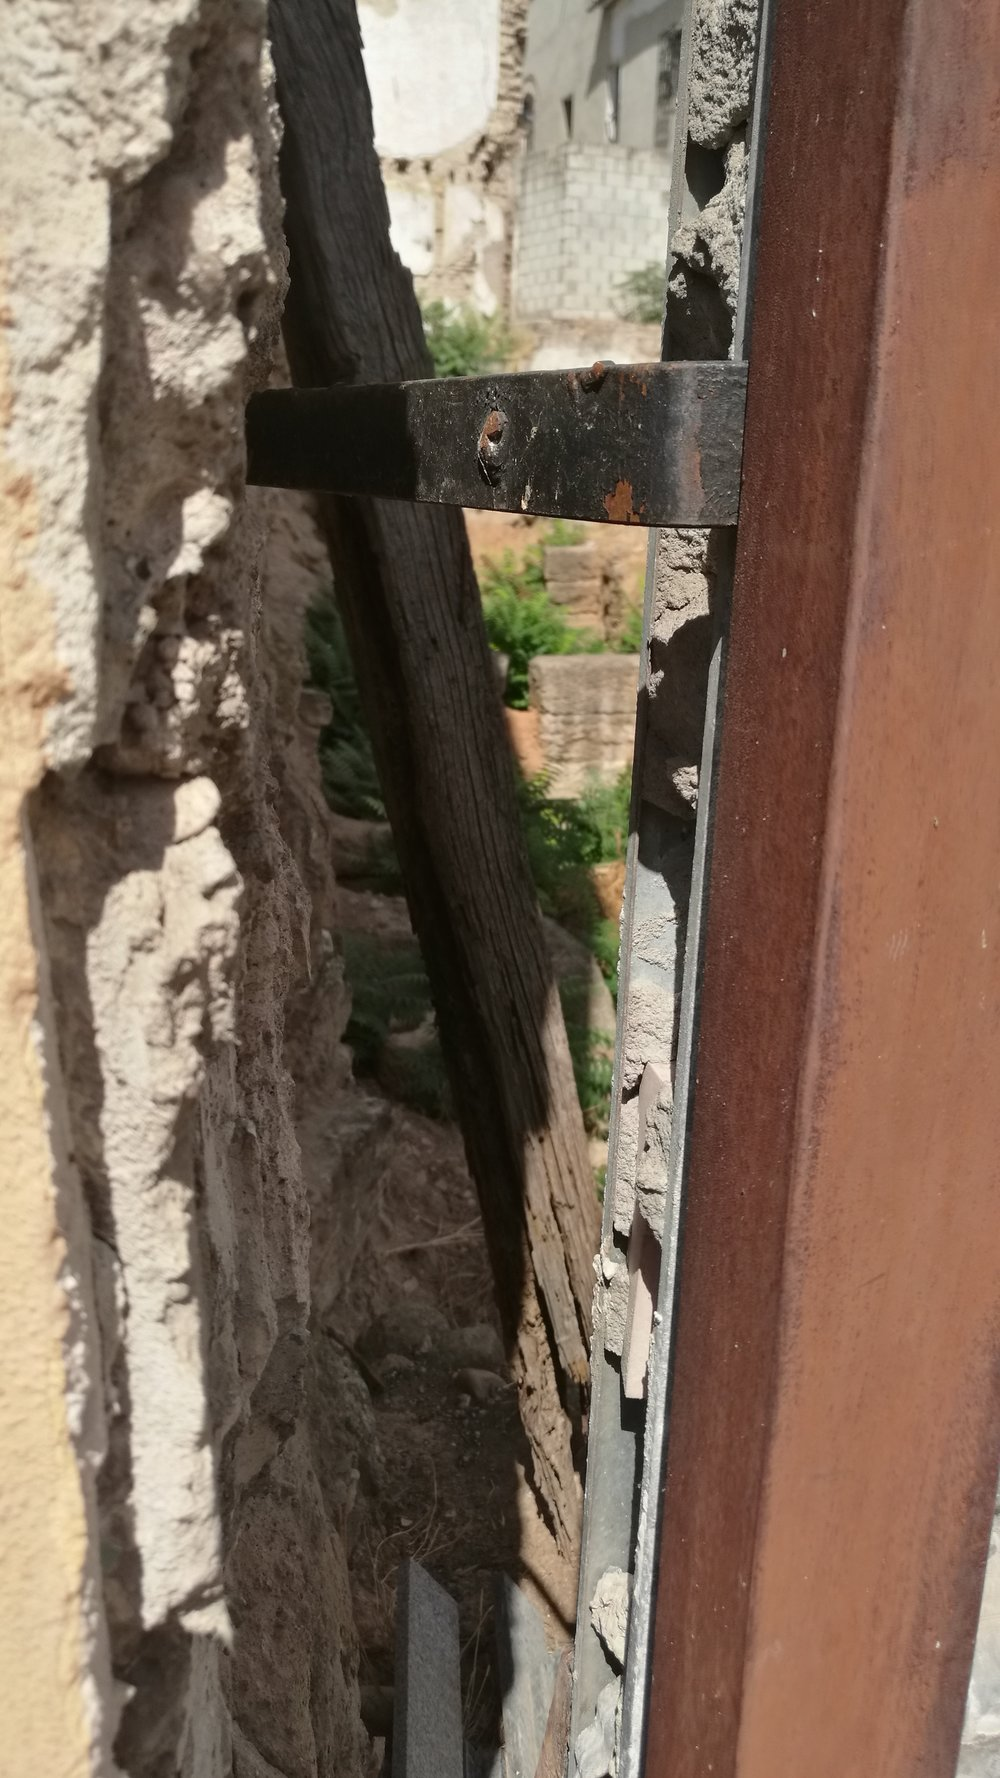 Peering through the walls to the excavation site